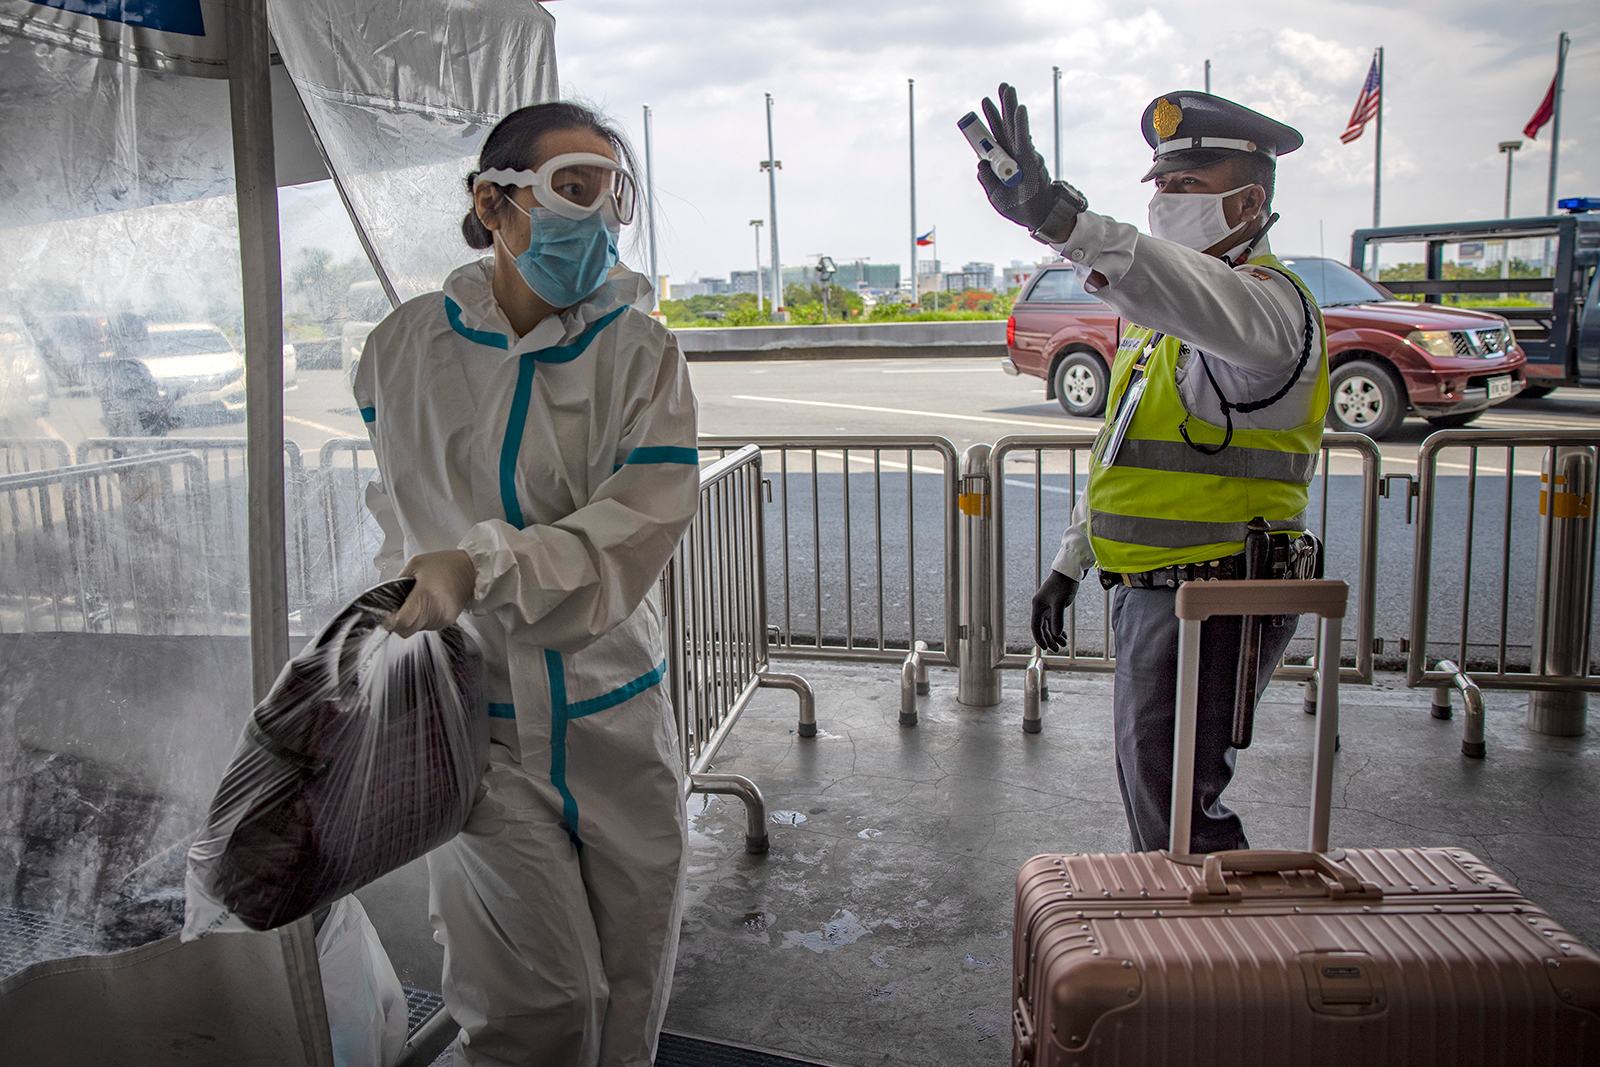 A traveler is seen wearing a protective suit upon arriving at Ninoy Aquino International Airport after a limited number of flights have resumed following relaxed lockdown measures on Friday, May 22, in Manila.